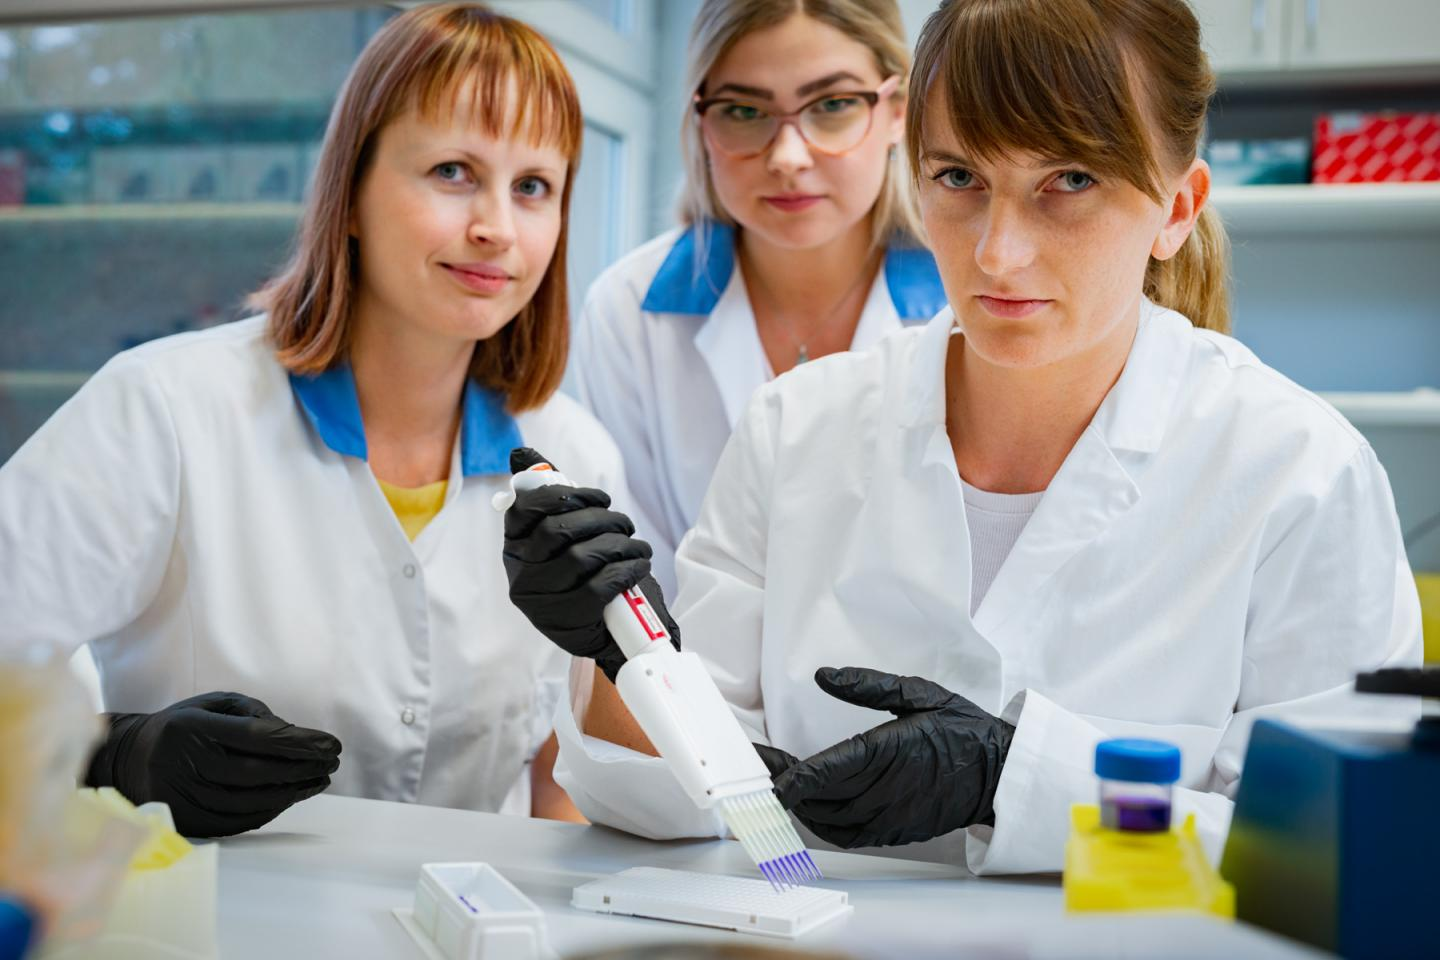 Researchers of Division of Gene Technology from TalTech